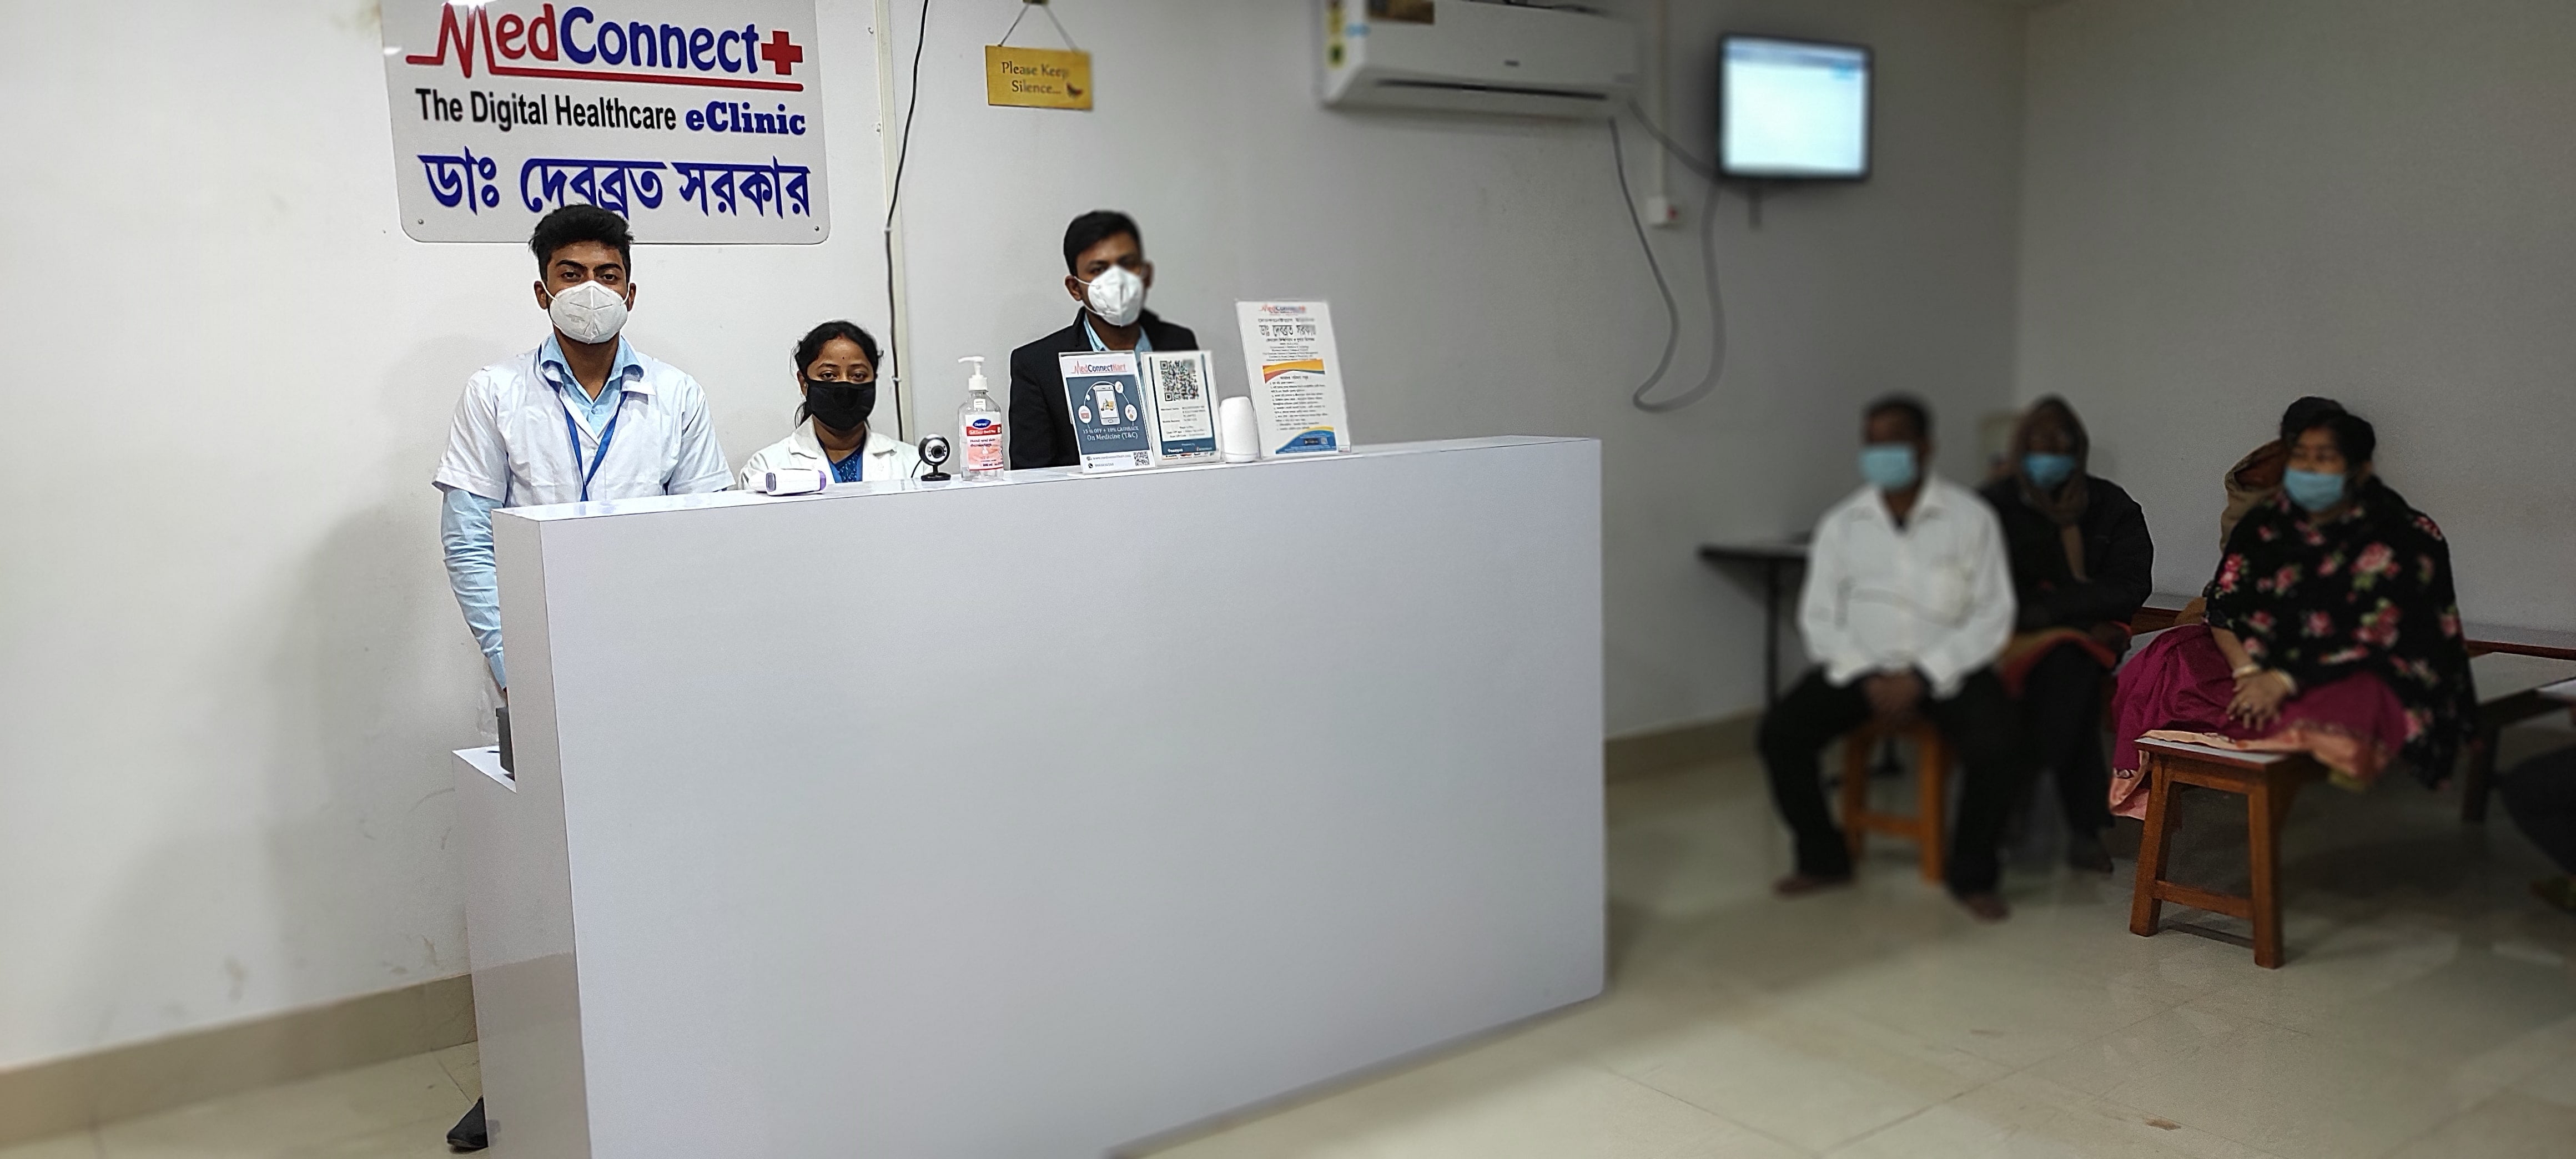 MedConnectPlus eClinic - Physician and Diabetes Clinic